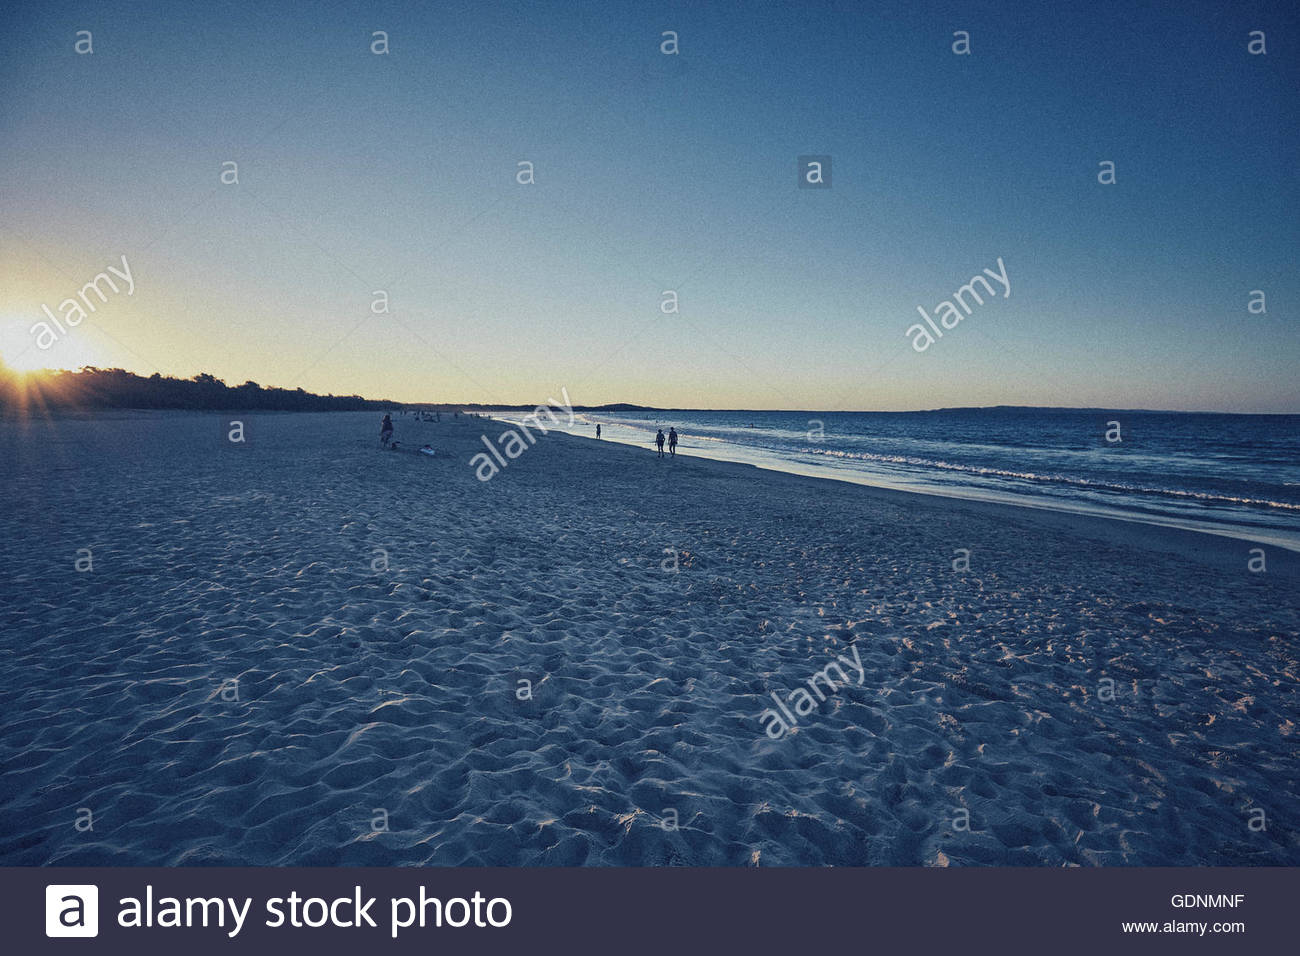 small groups of people on a quiet beach at sunset - Stock Image